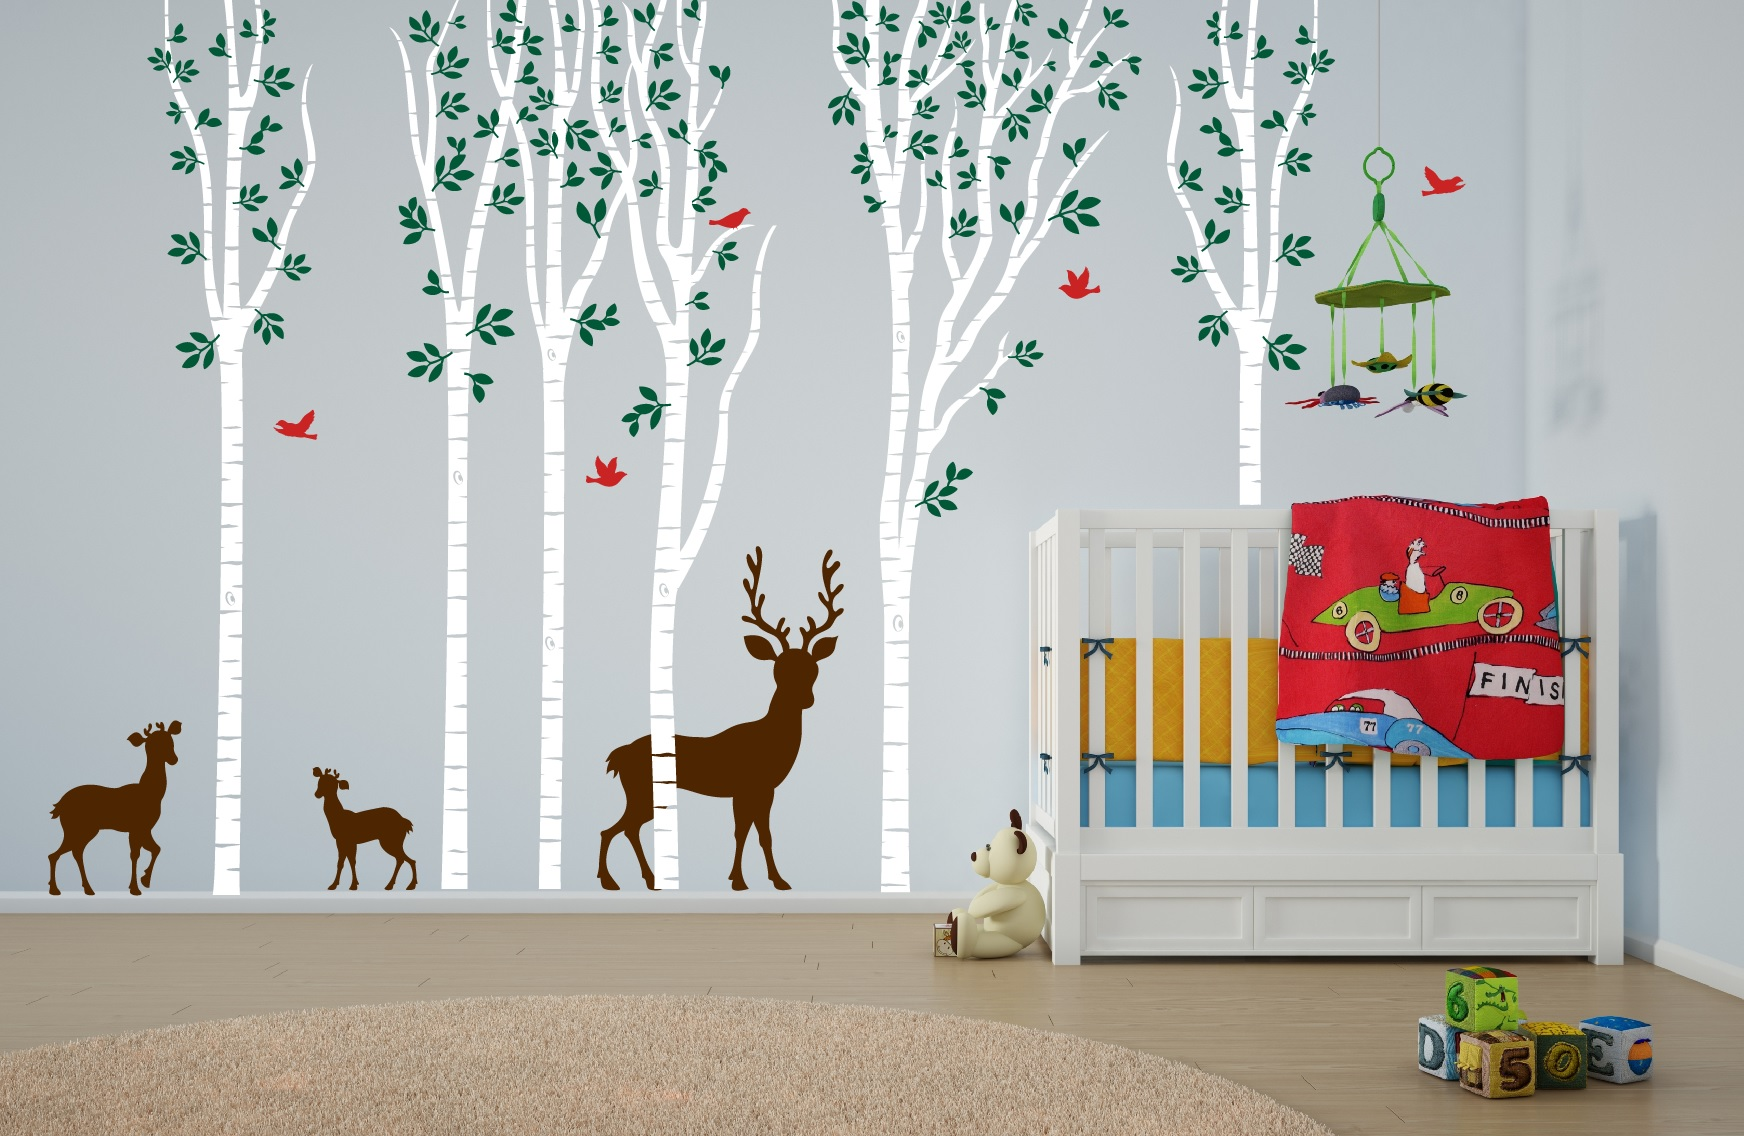 birch-tree-nursery-deer-set-birds.jpg